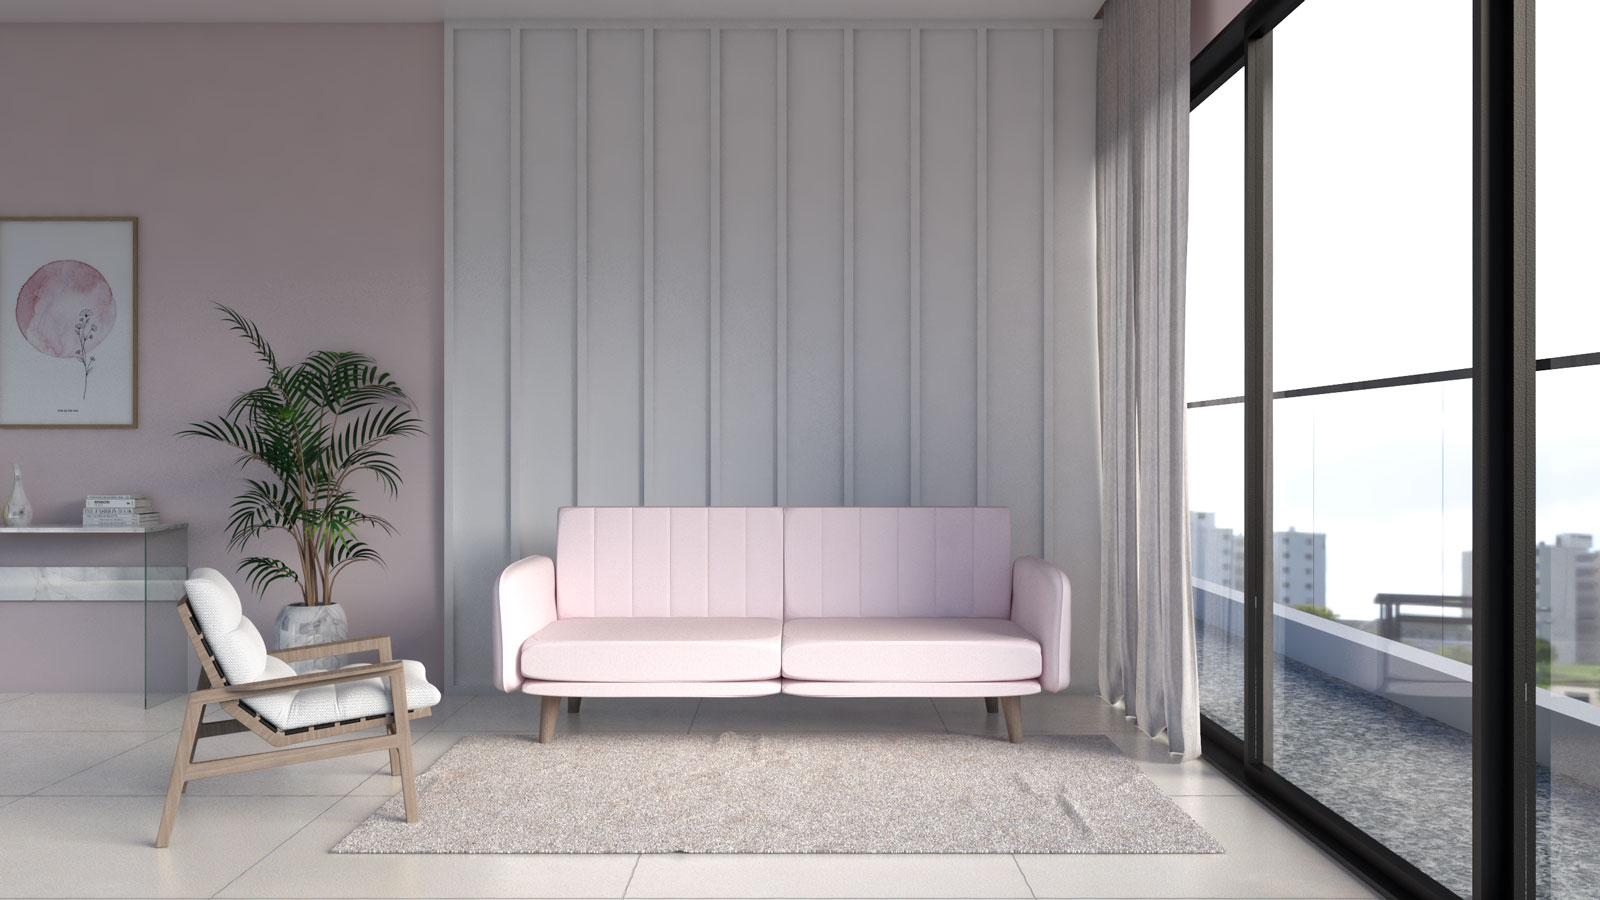 Living room with beige rug and pink couch